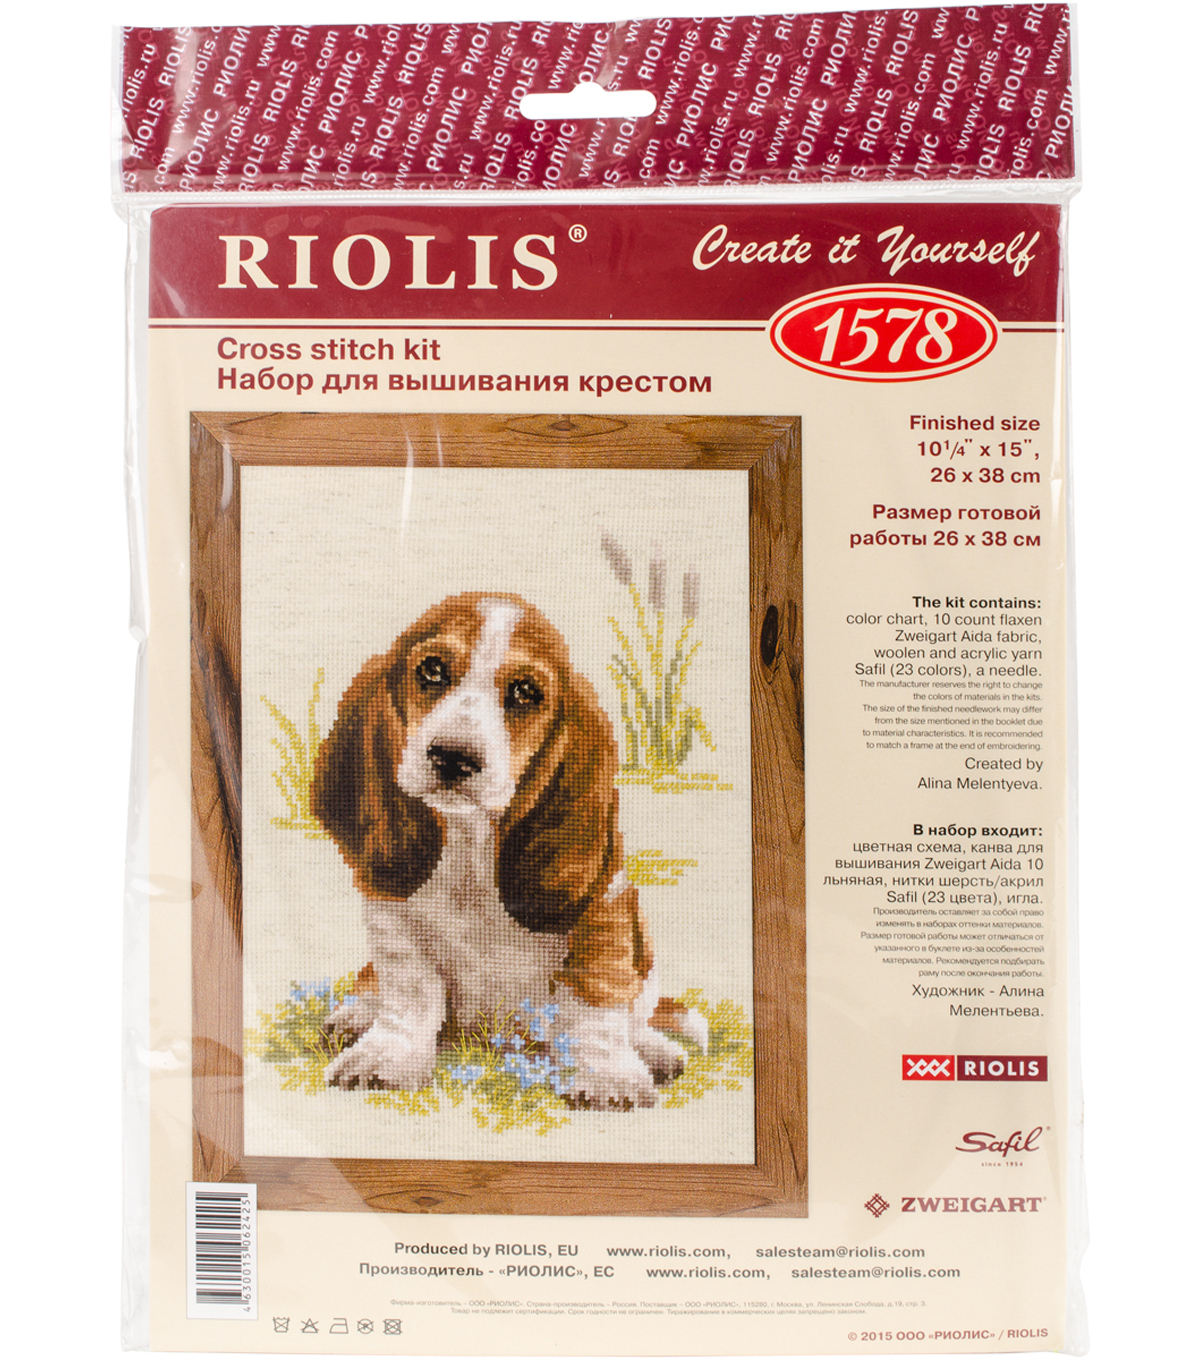 Basset Hound Puppy Counted Cross Stitch Kit 10 Count